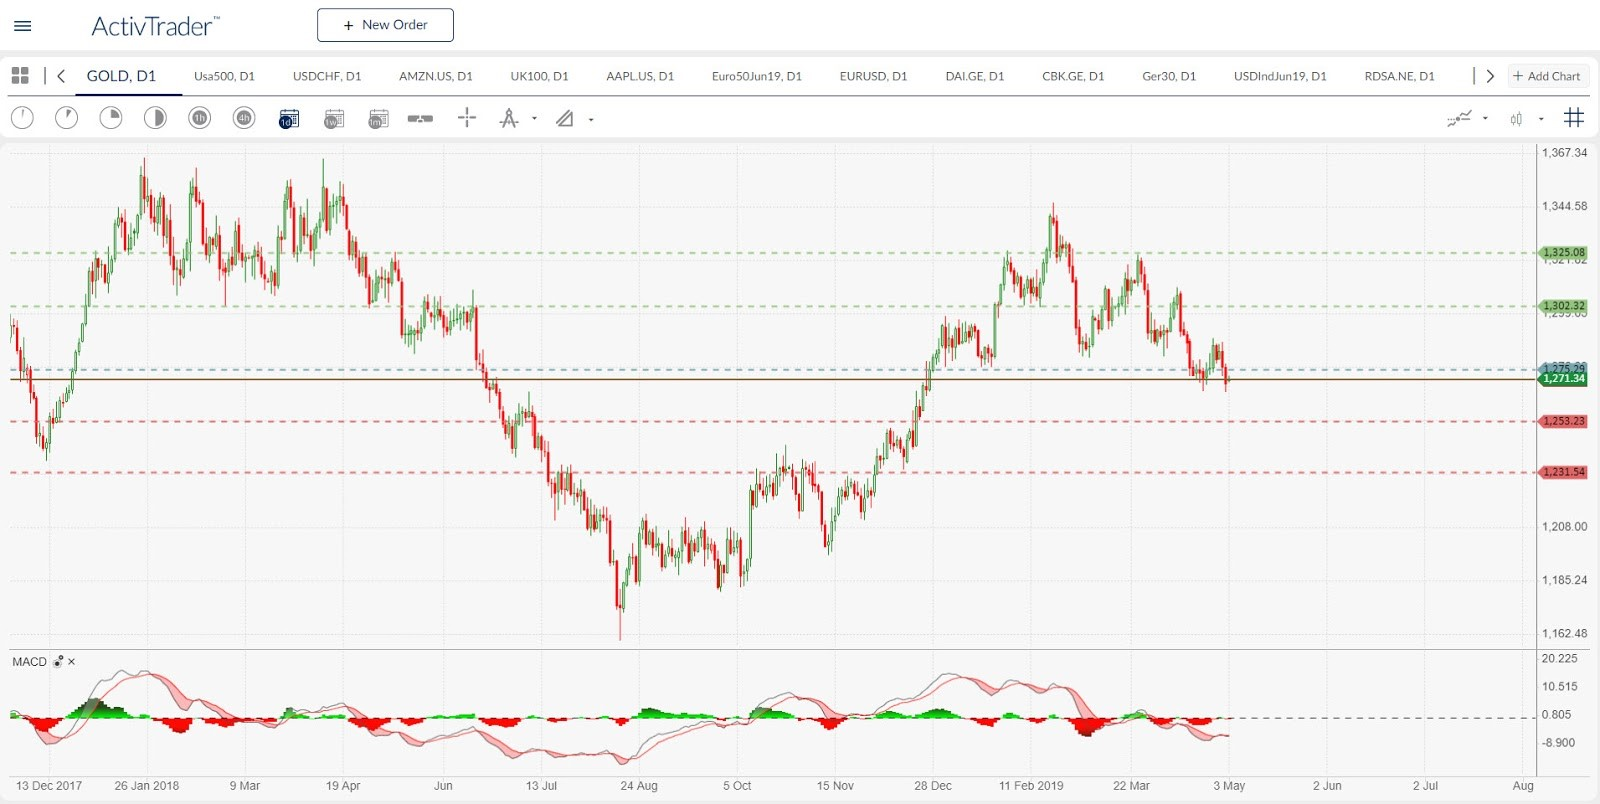 Gold - daily chart. Source: ActivTrader